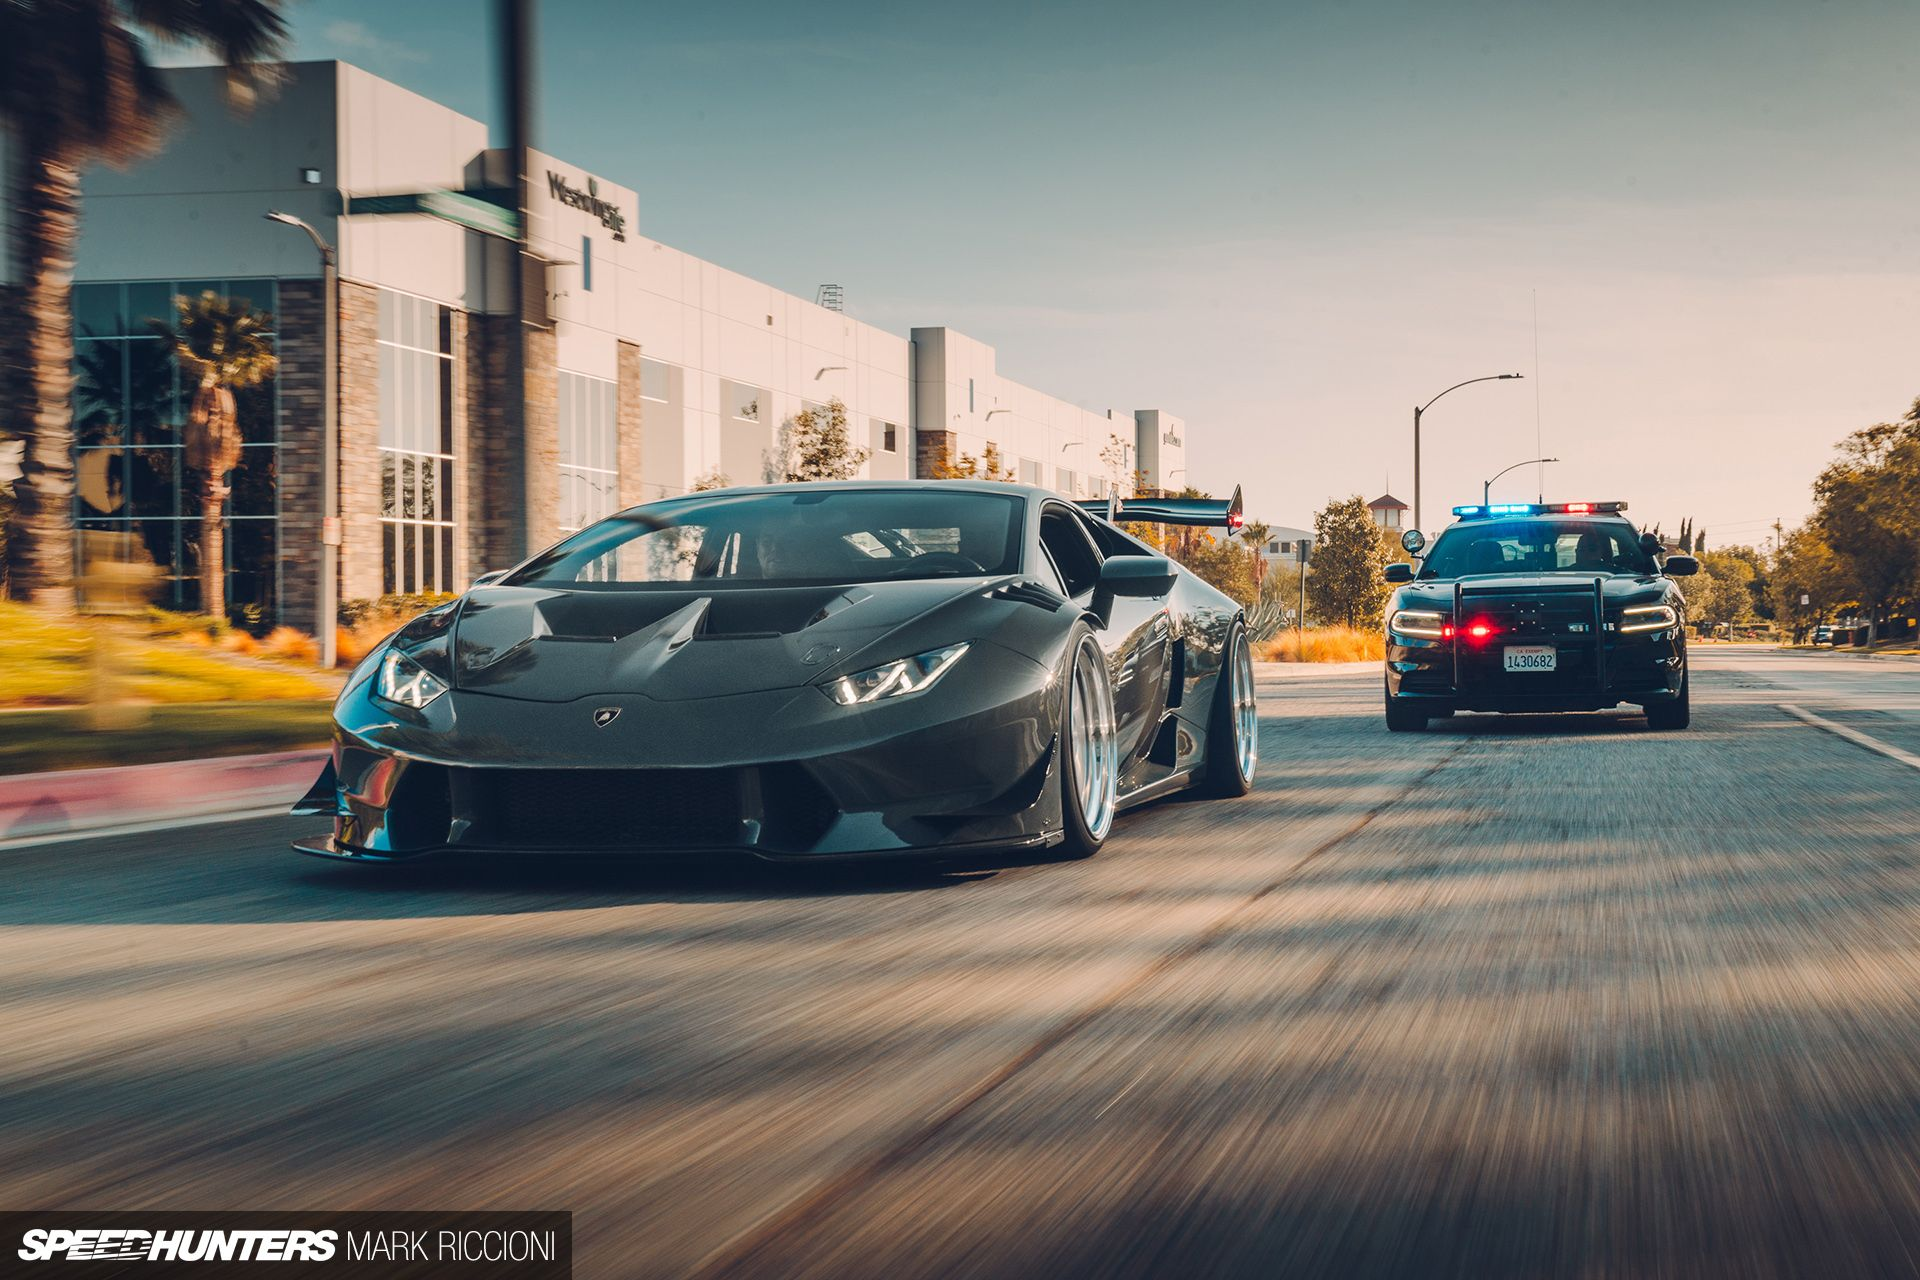 Chasing Extreme Dreams In A Twin Turbo Huracán Sd Street Cars